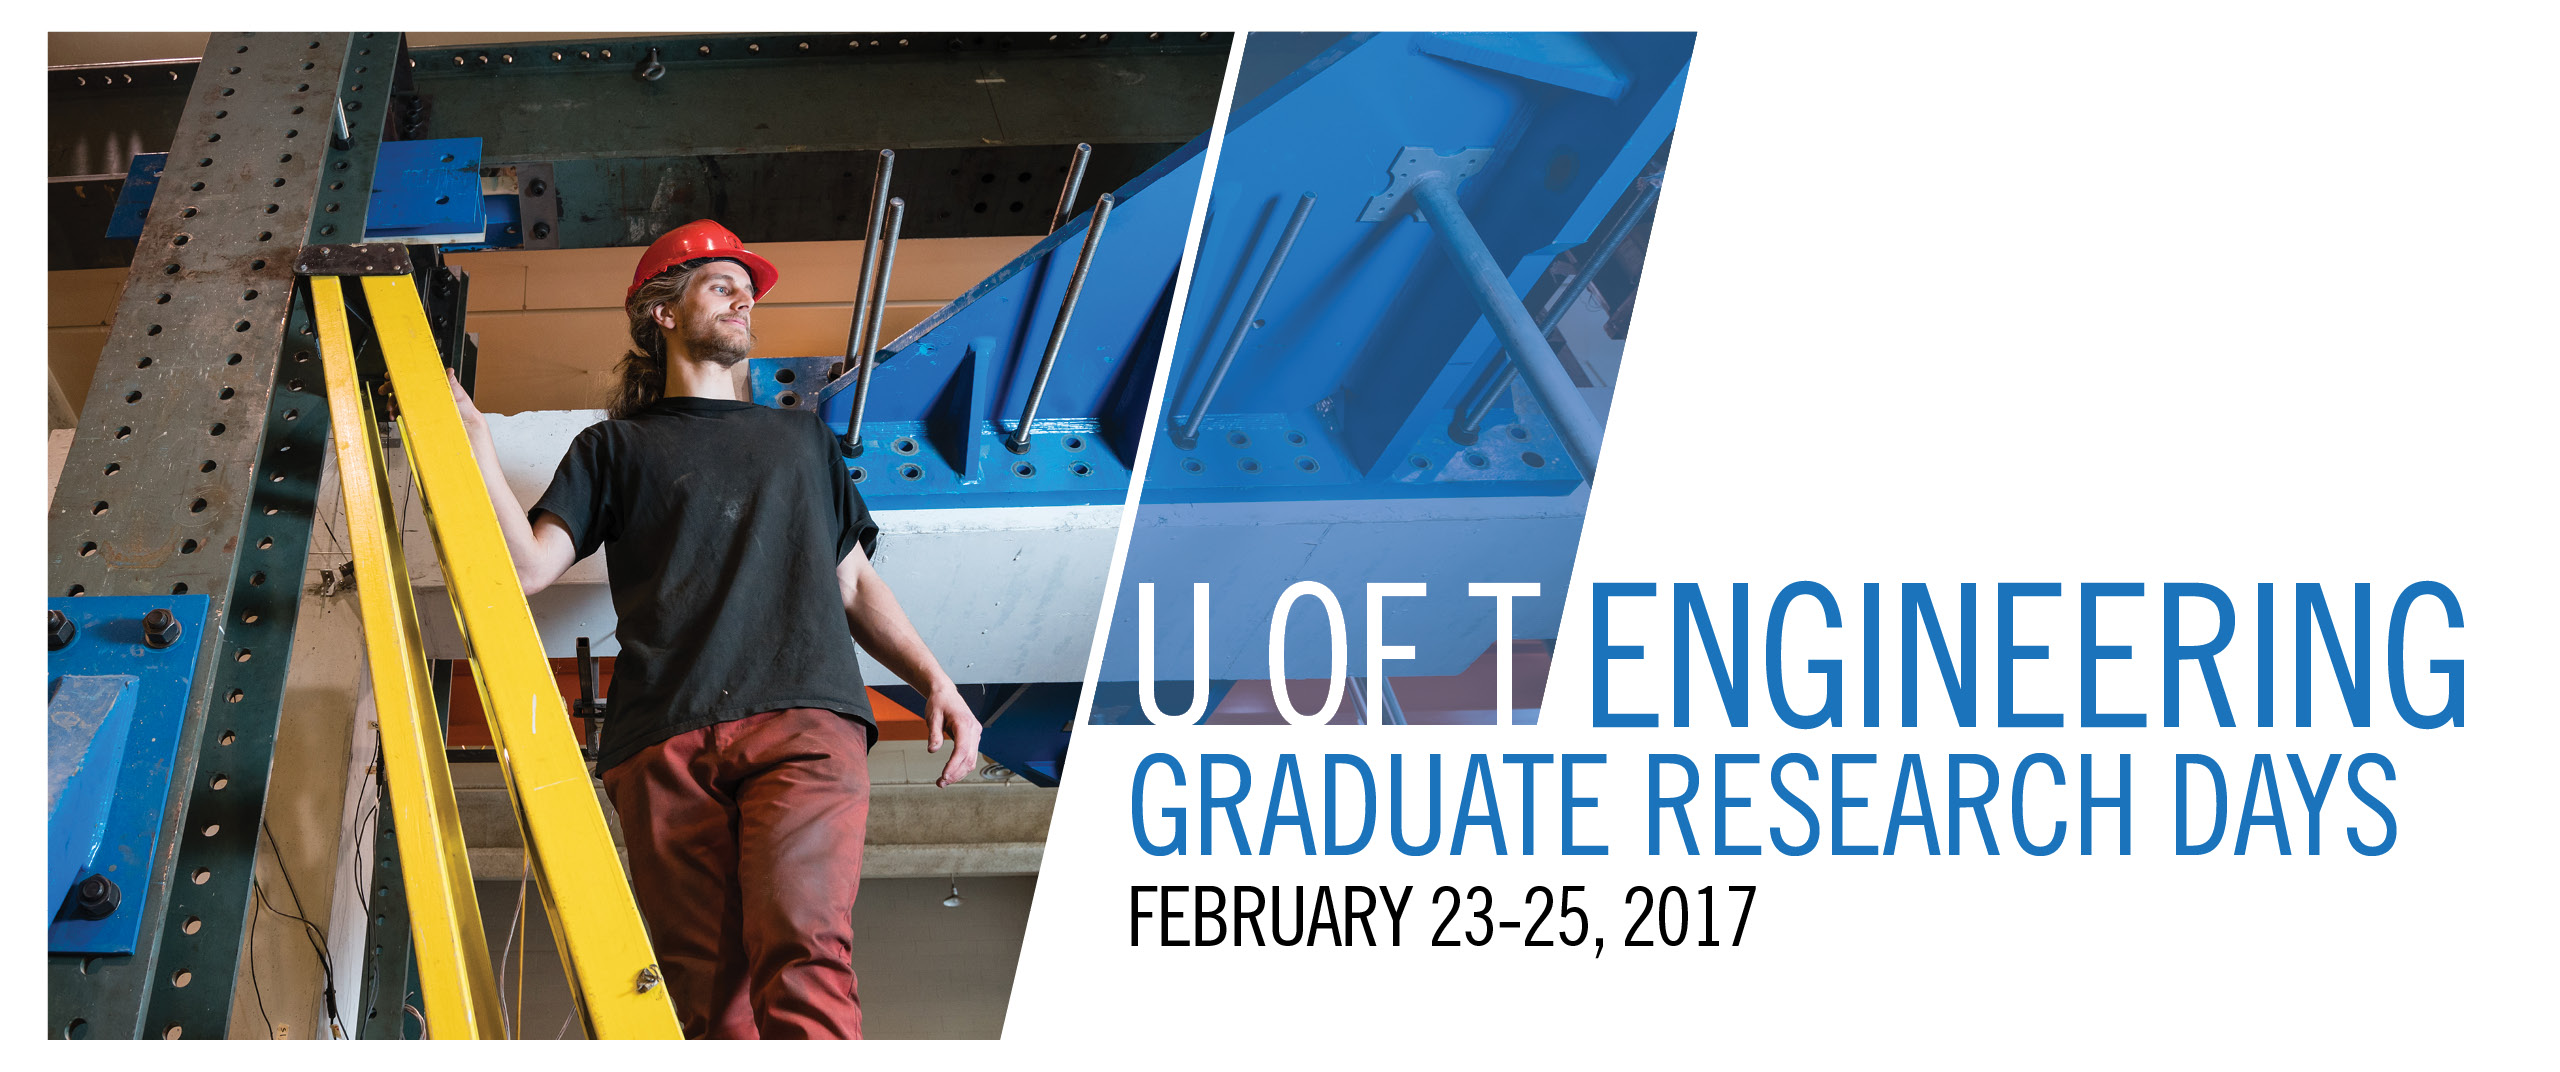 U of T Engineering Graduate Research Days, February 23-25, 2017